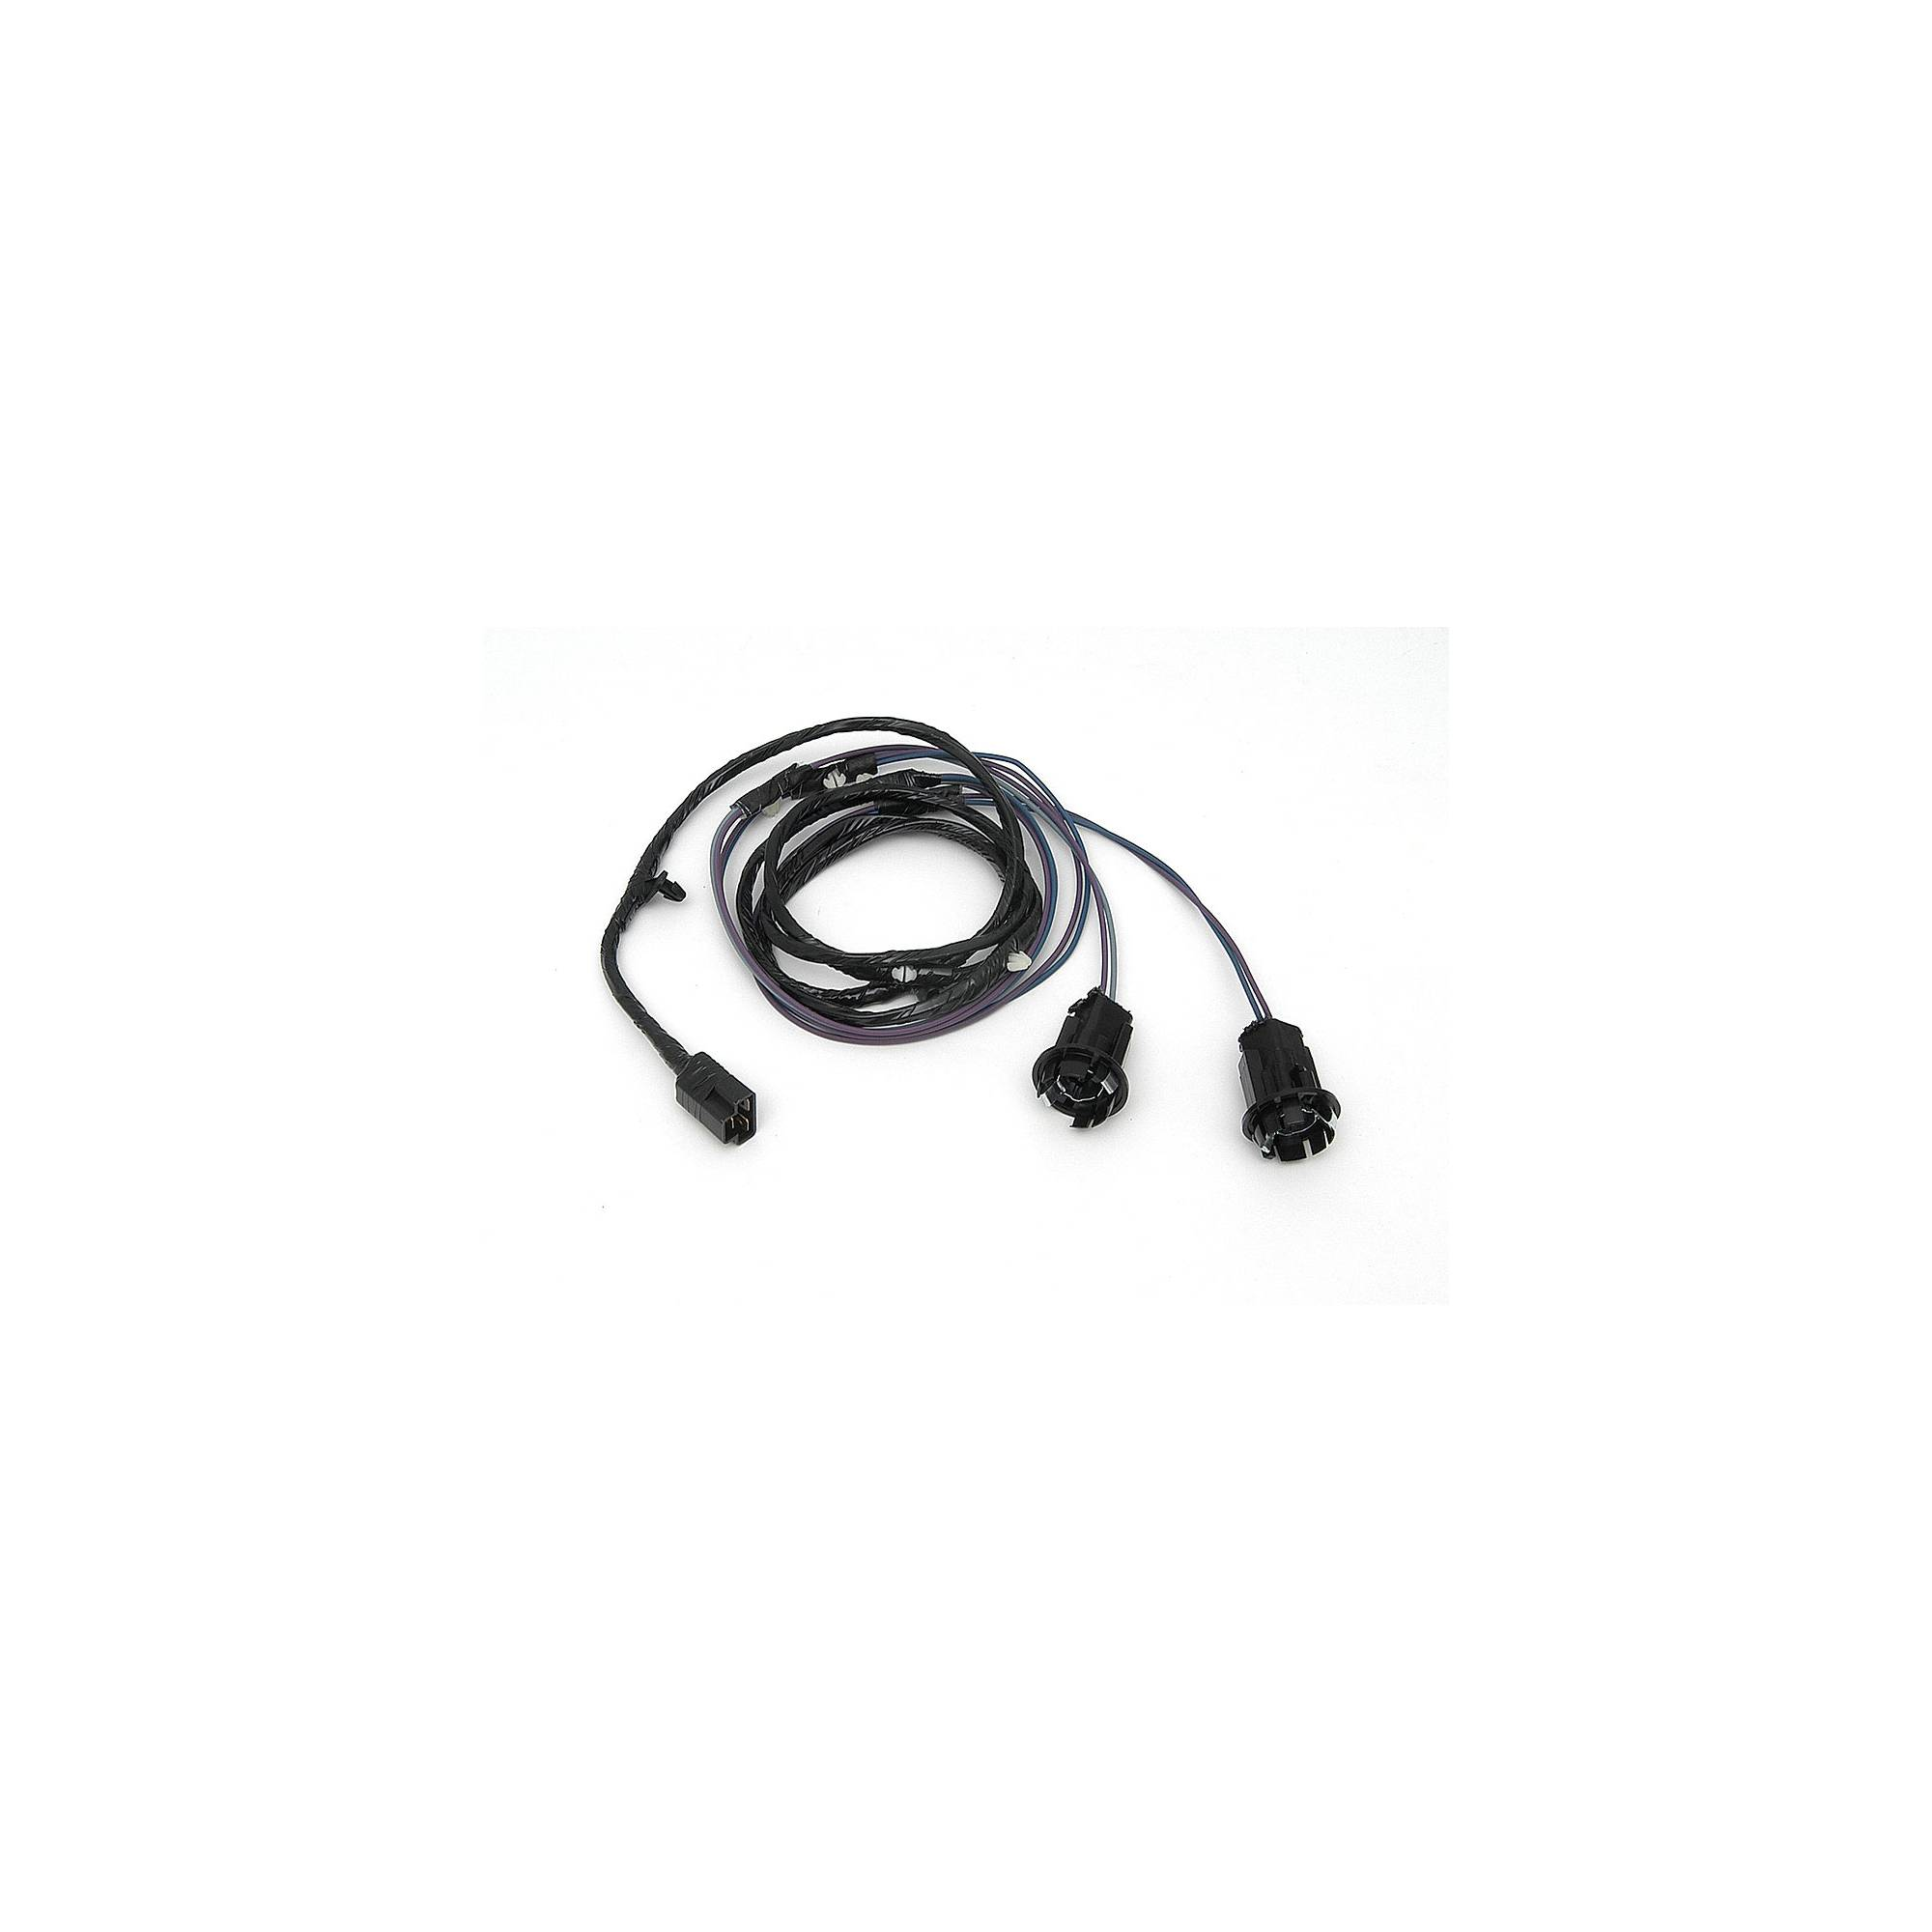 hight resolution of eckler s premier products 61156676 chevy truck parking turn signal light hood extension wiring harness